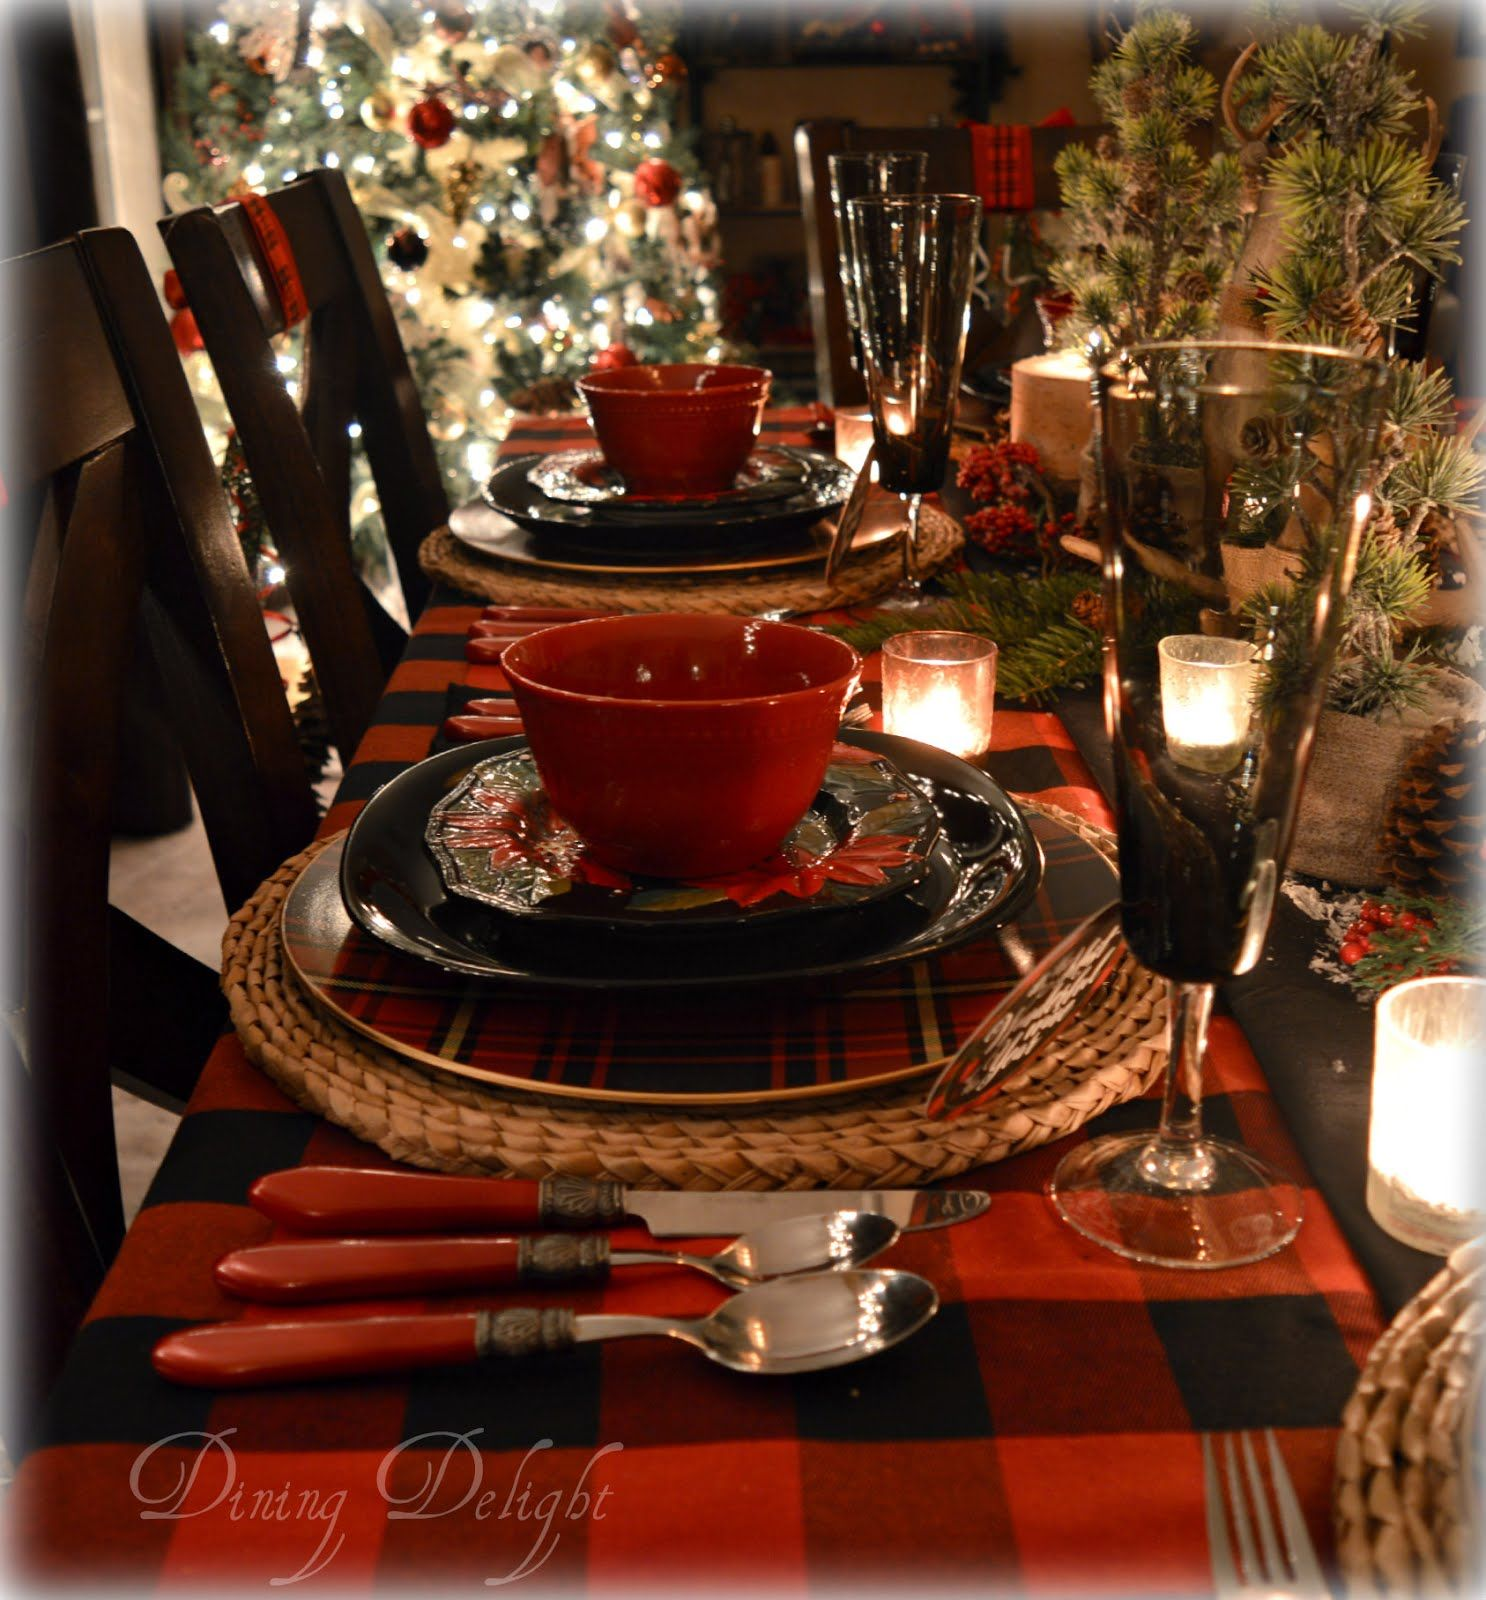 Chair Leg Covers Canadian Tire Revolving In Rajkot Christmas Table Decorations Canada Indiepedia Org